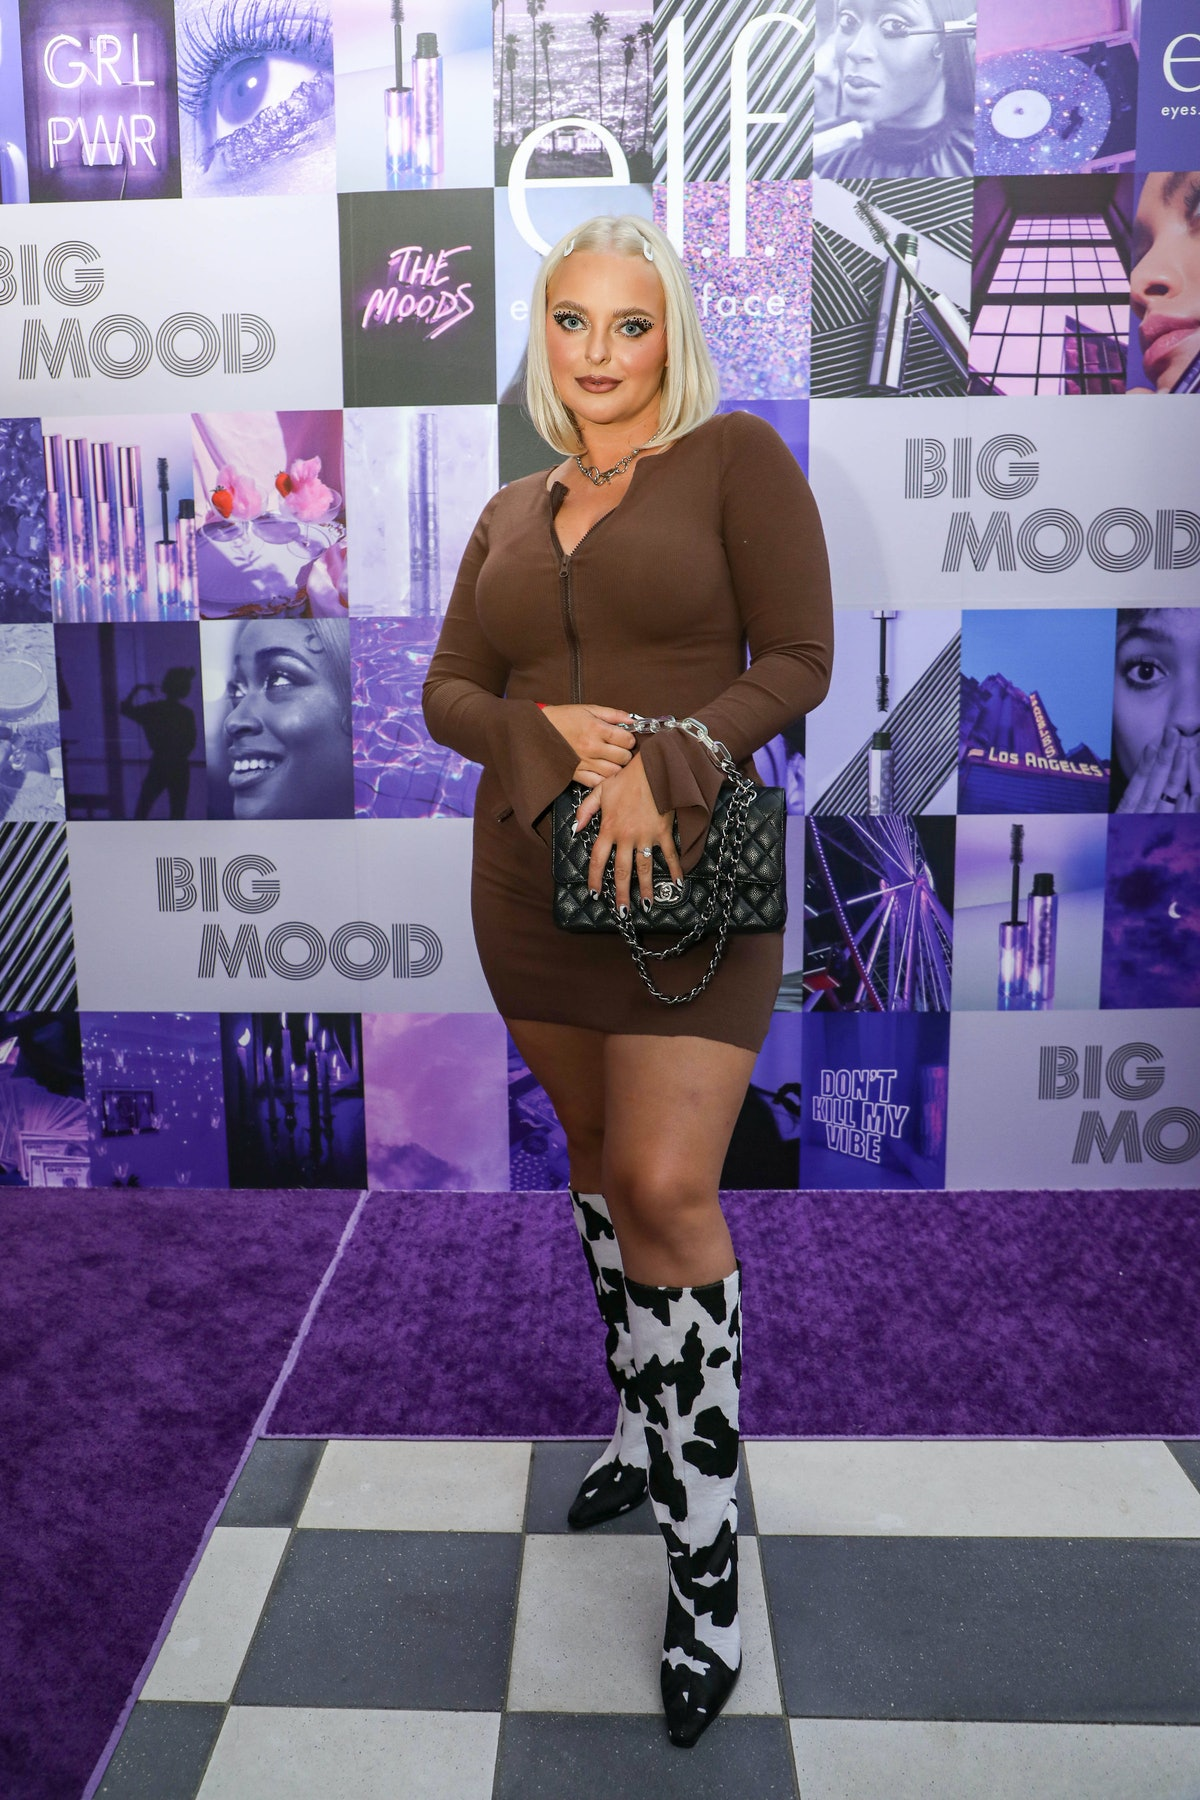 Makeup artist, brand owner, and beauty influencer Megs Cahill attends a launch event for e.l.f.'s Bi...